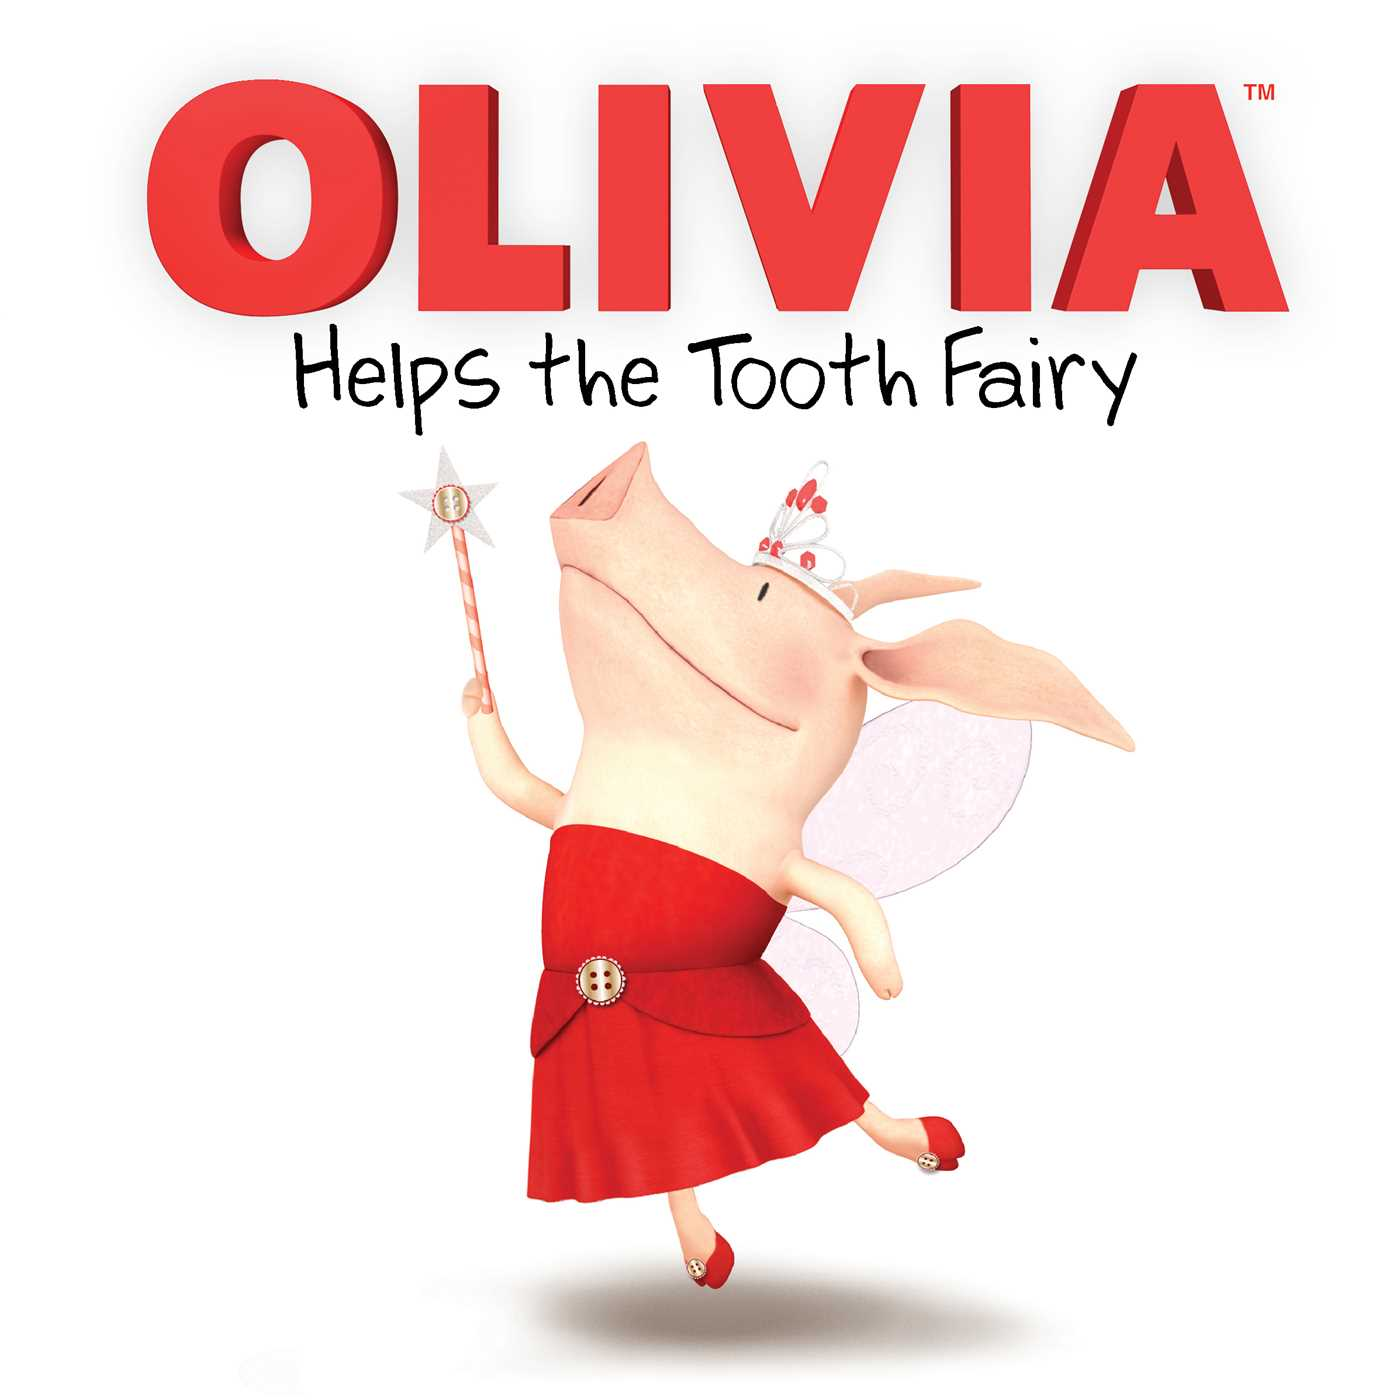 Olivia-helps-the-tooth-fairy-9781481419062_hr